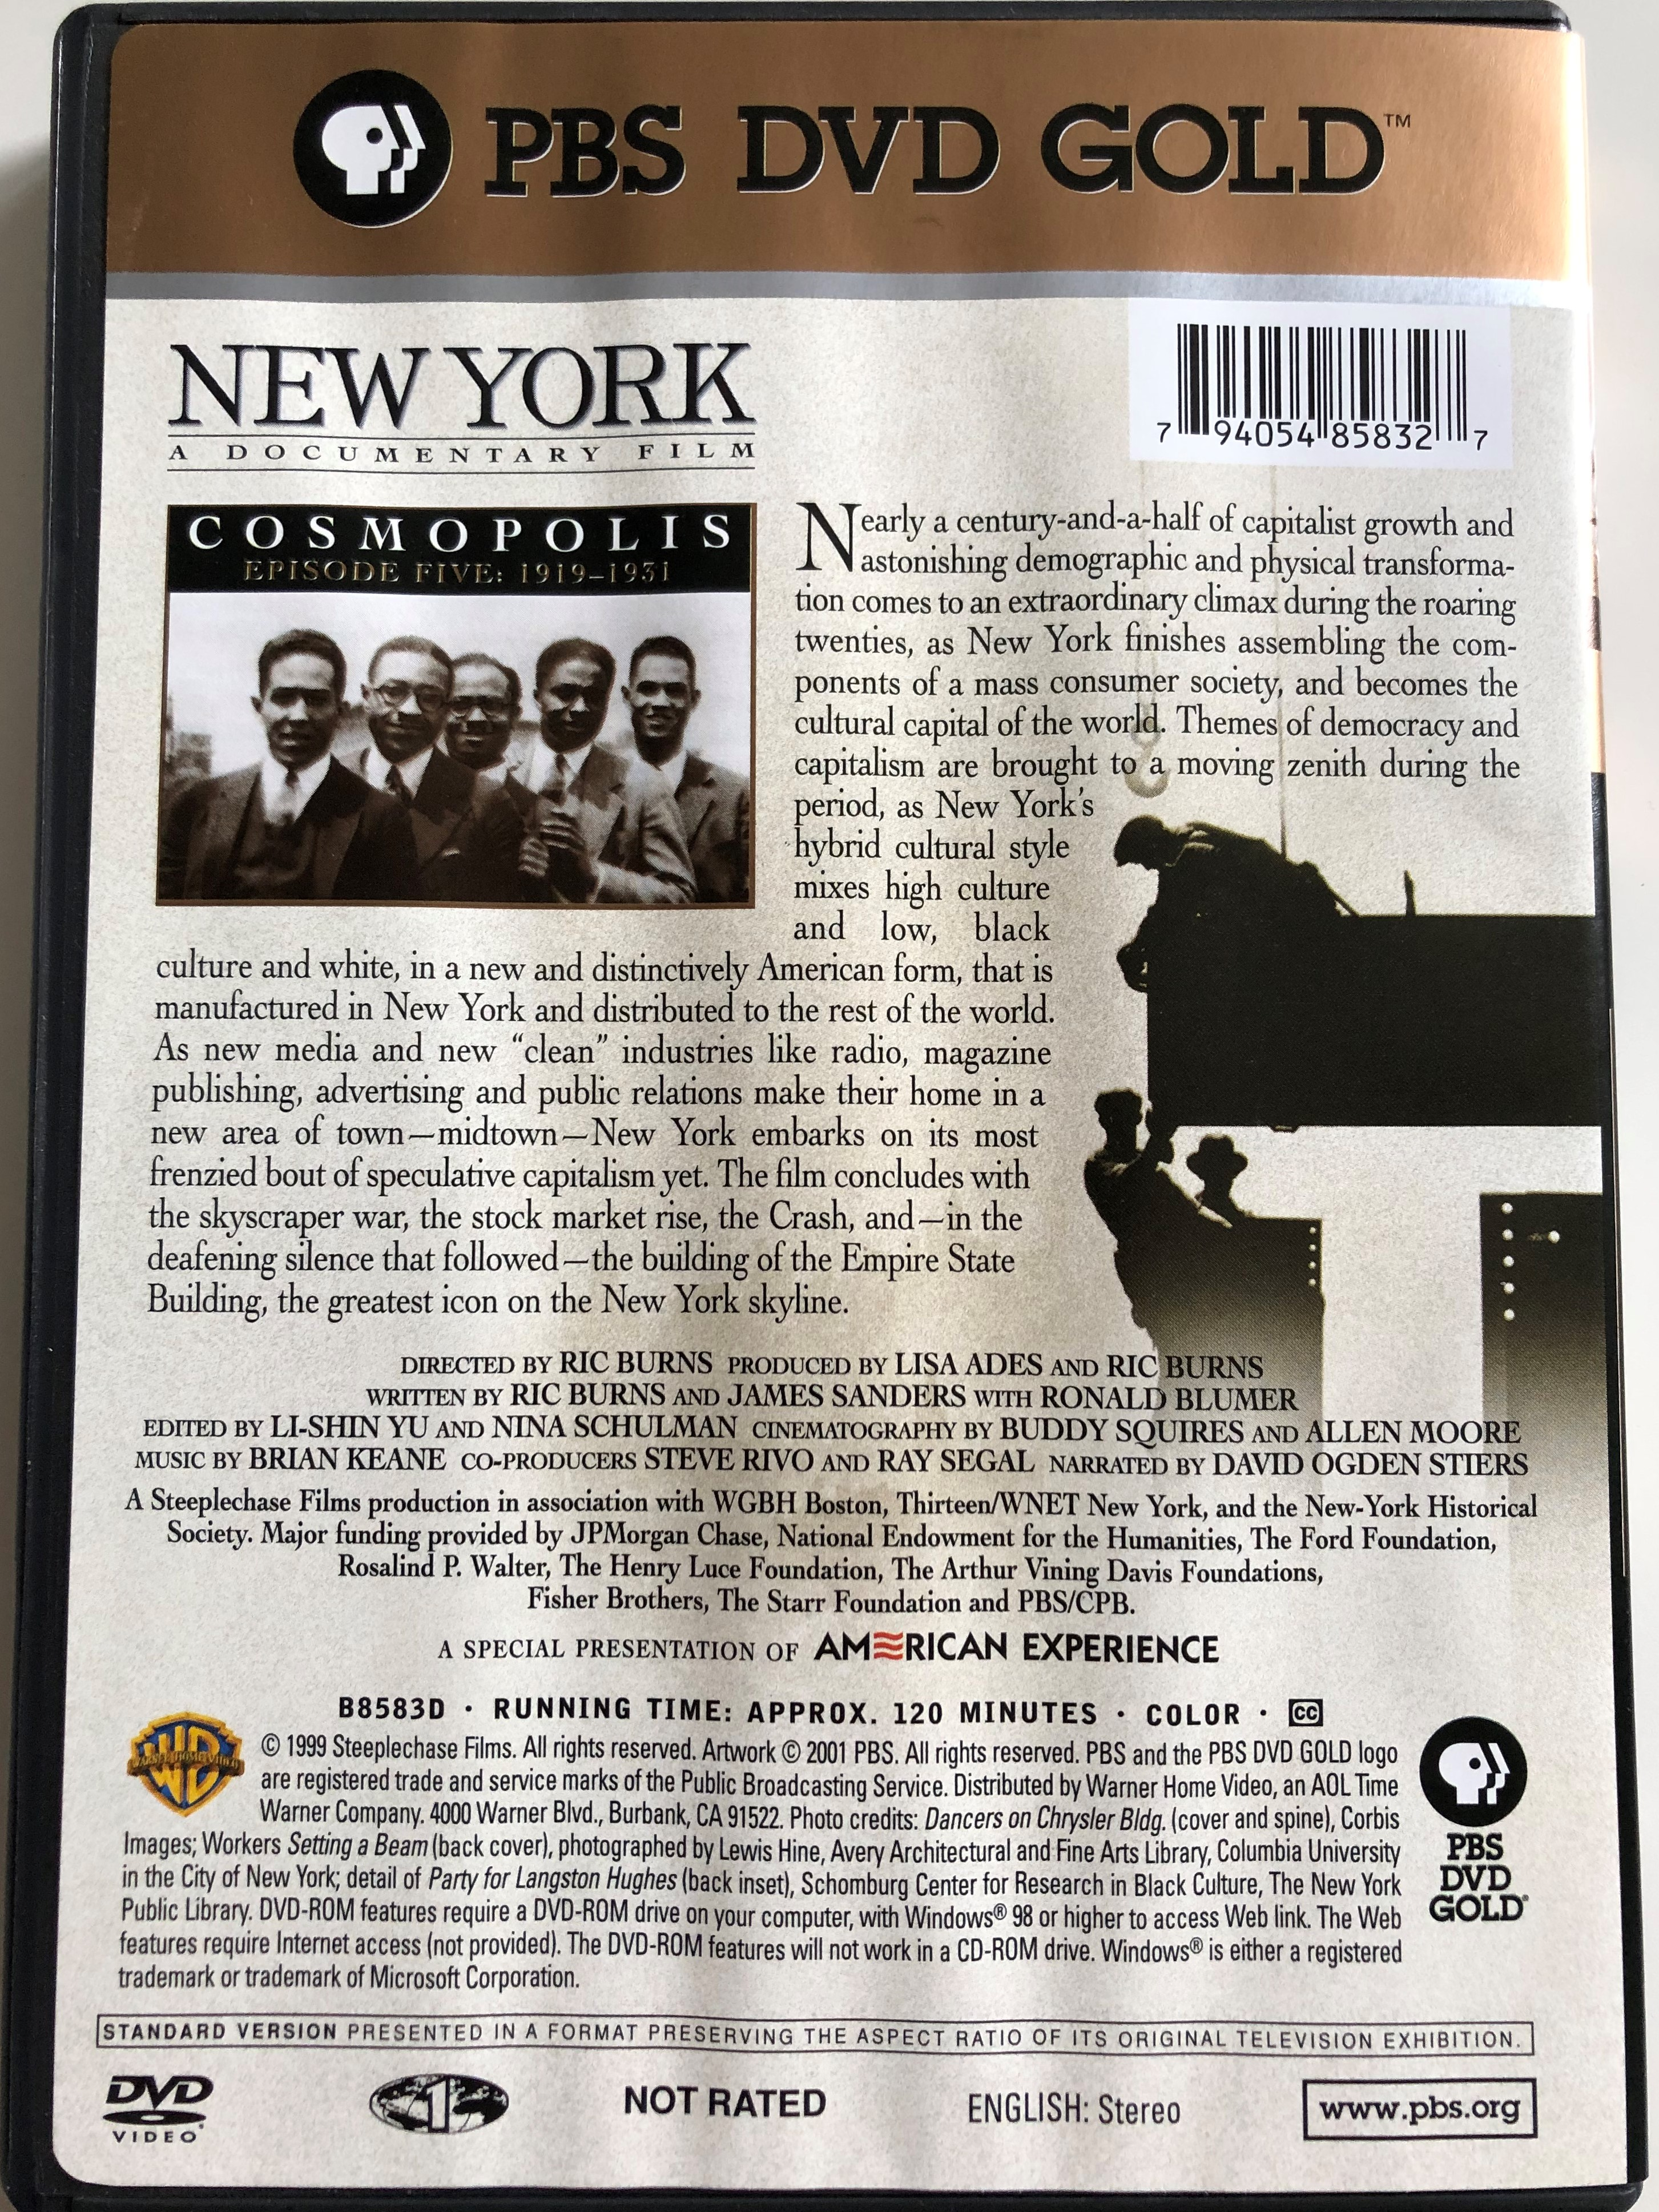 new-york-episode-5-1919-to-1931-cosmopolis-dvd-1999-directed-by-ric-burns-3.jpg